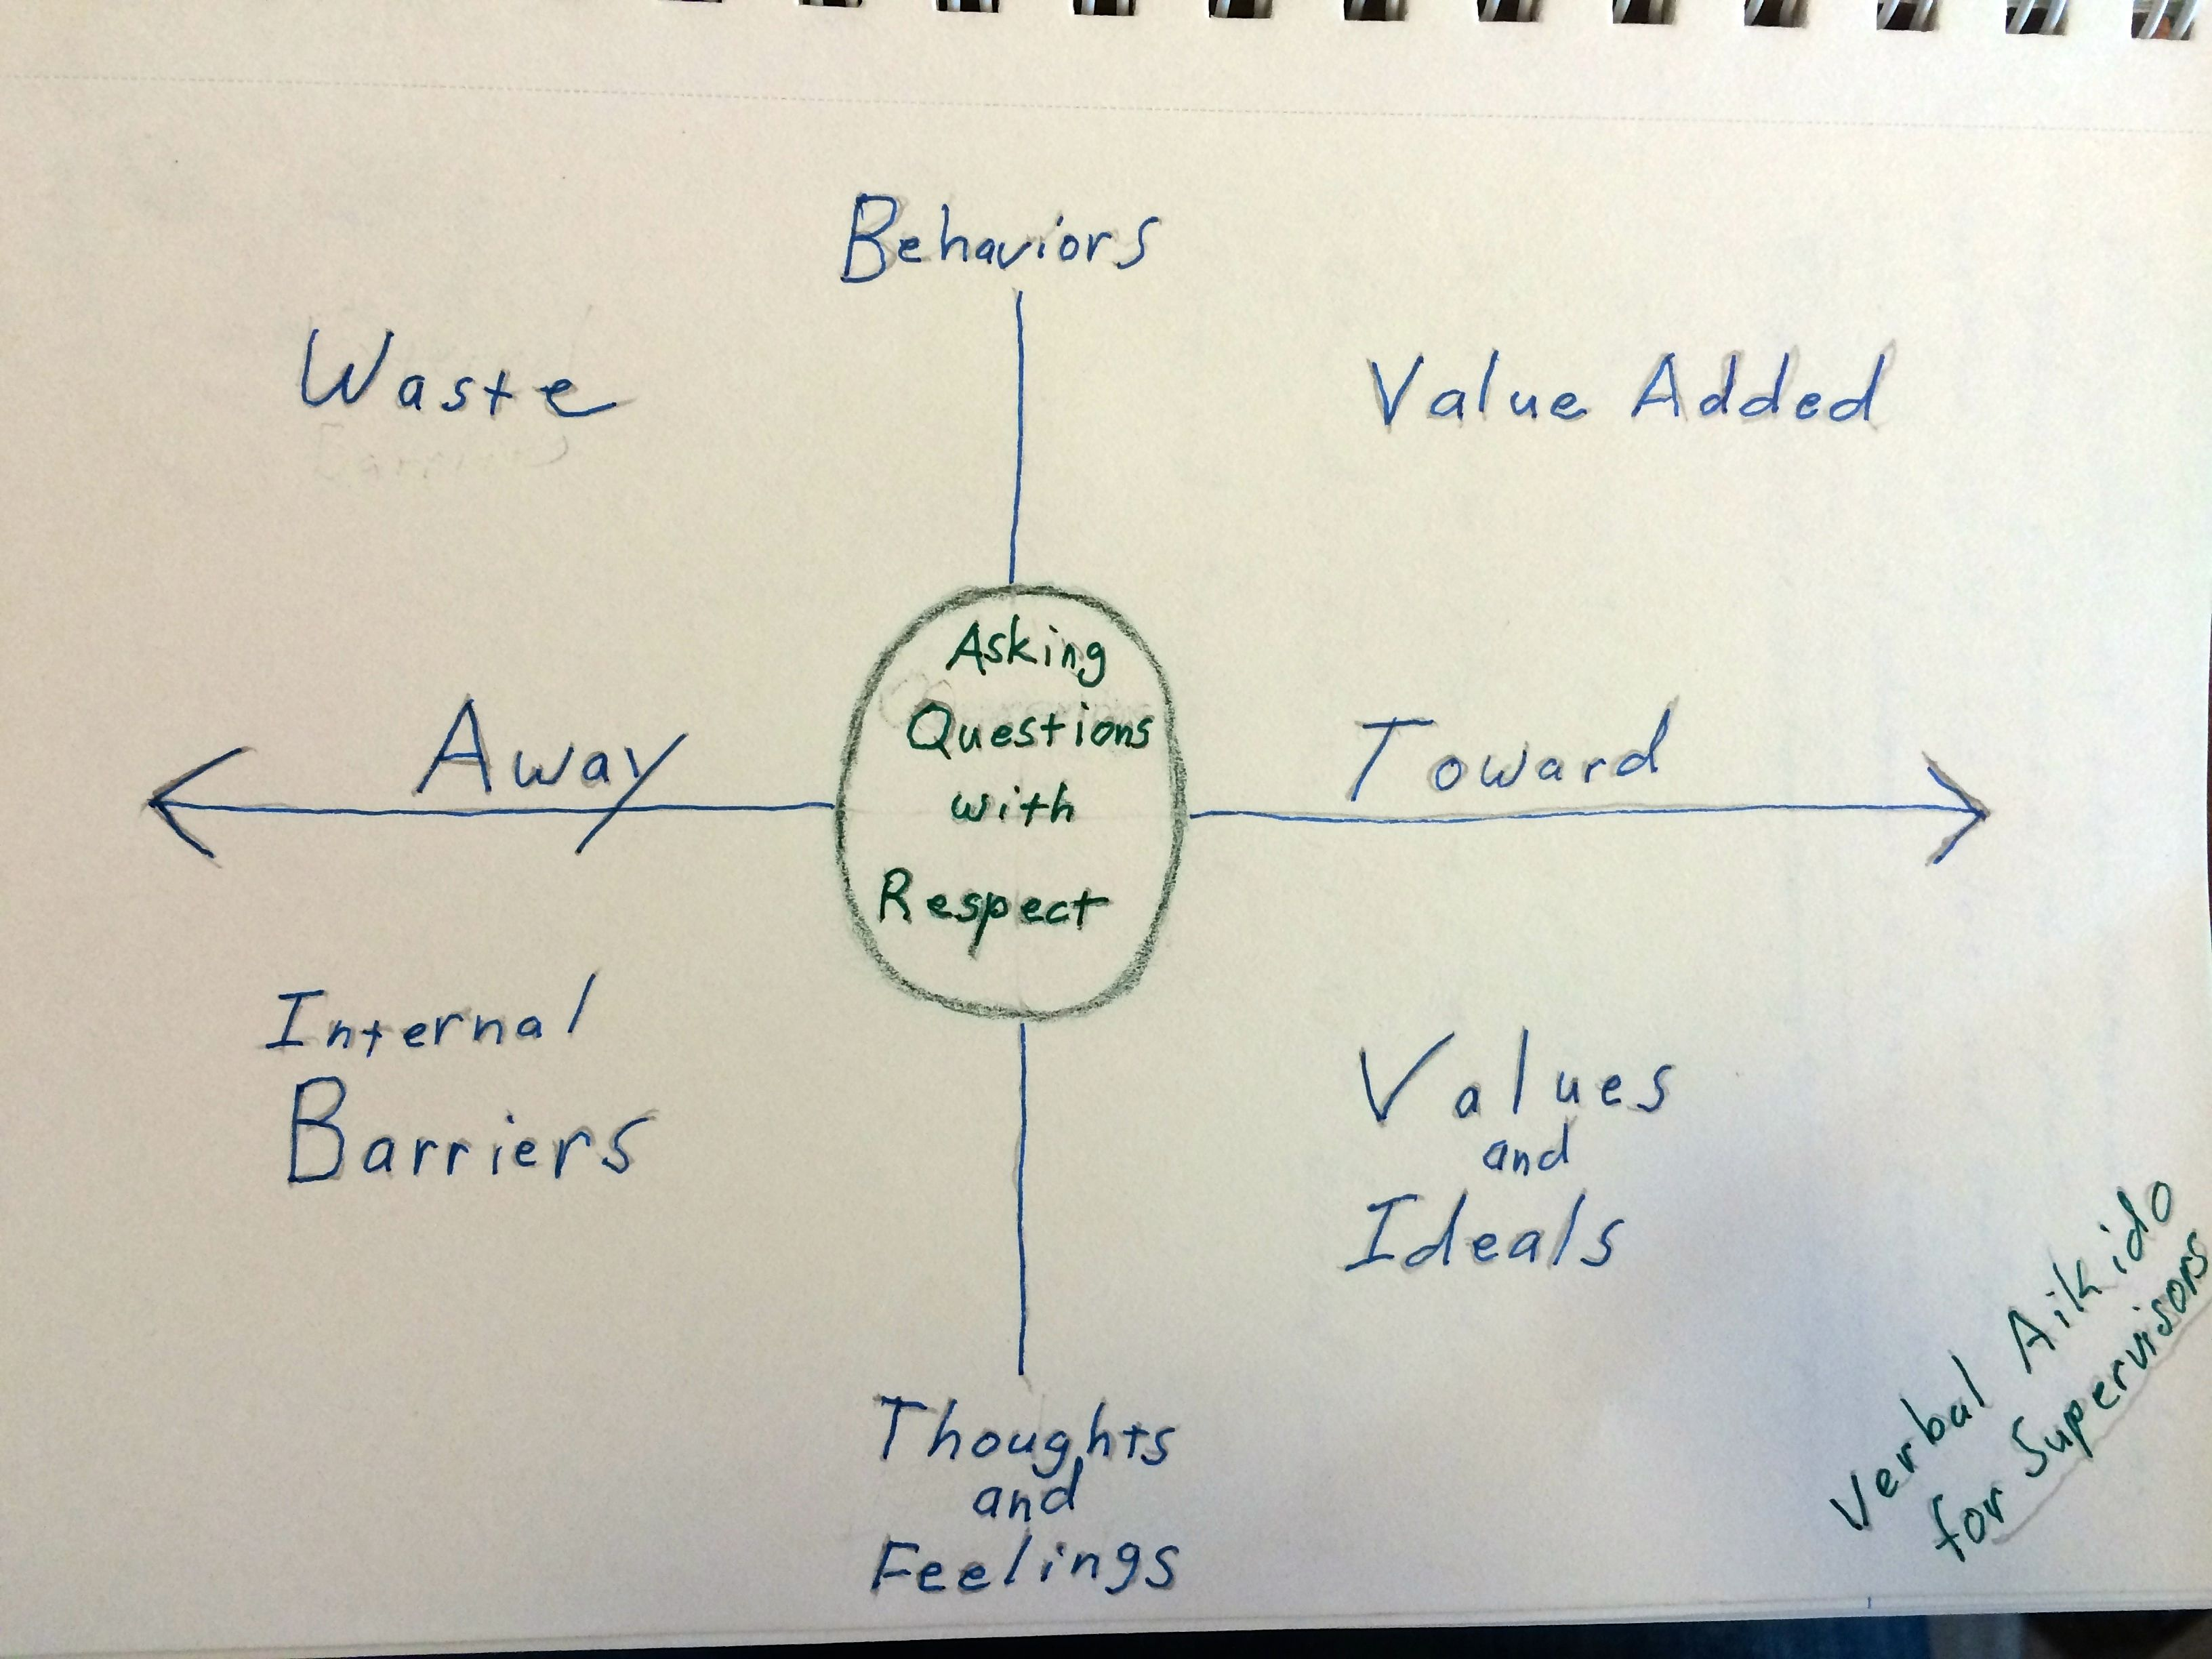 This is a Lean Systems (Toyota) management matrix.